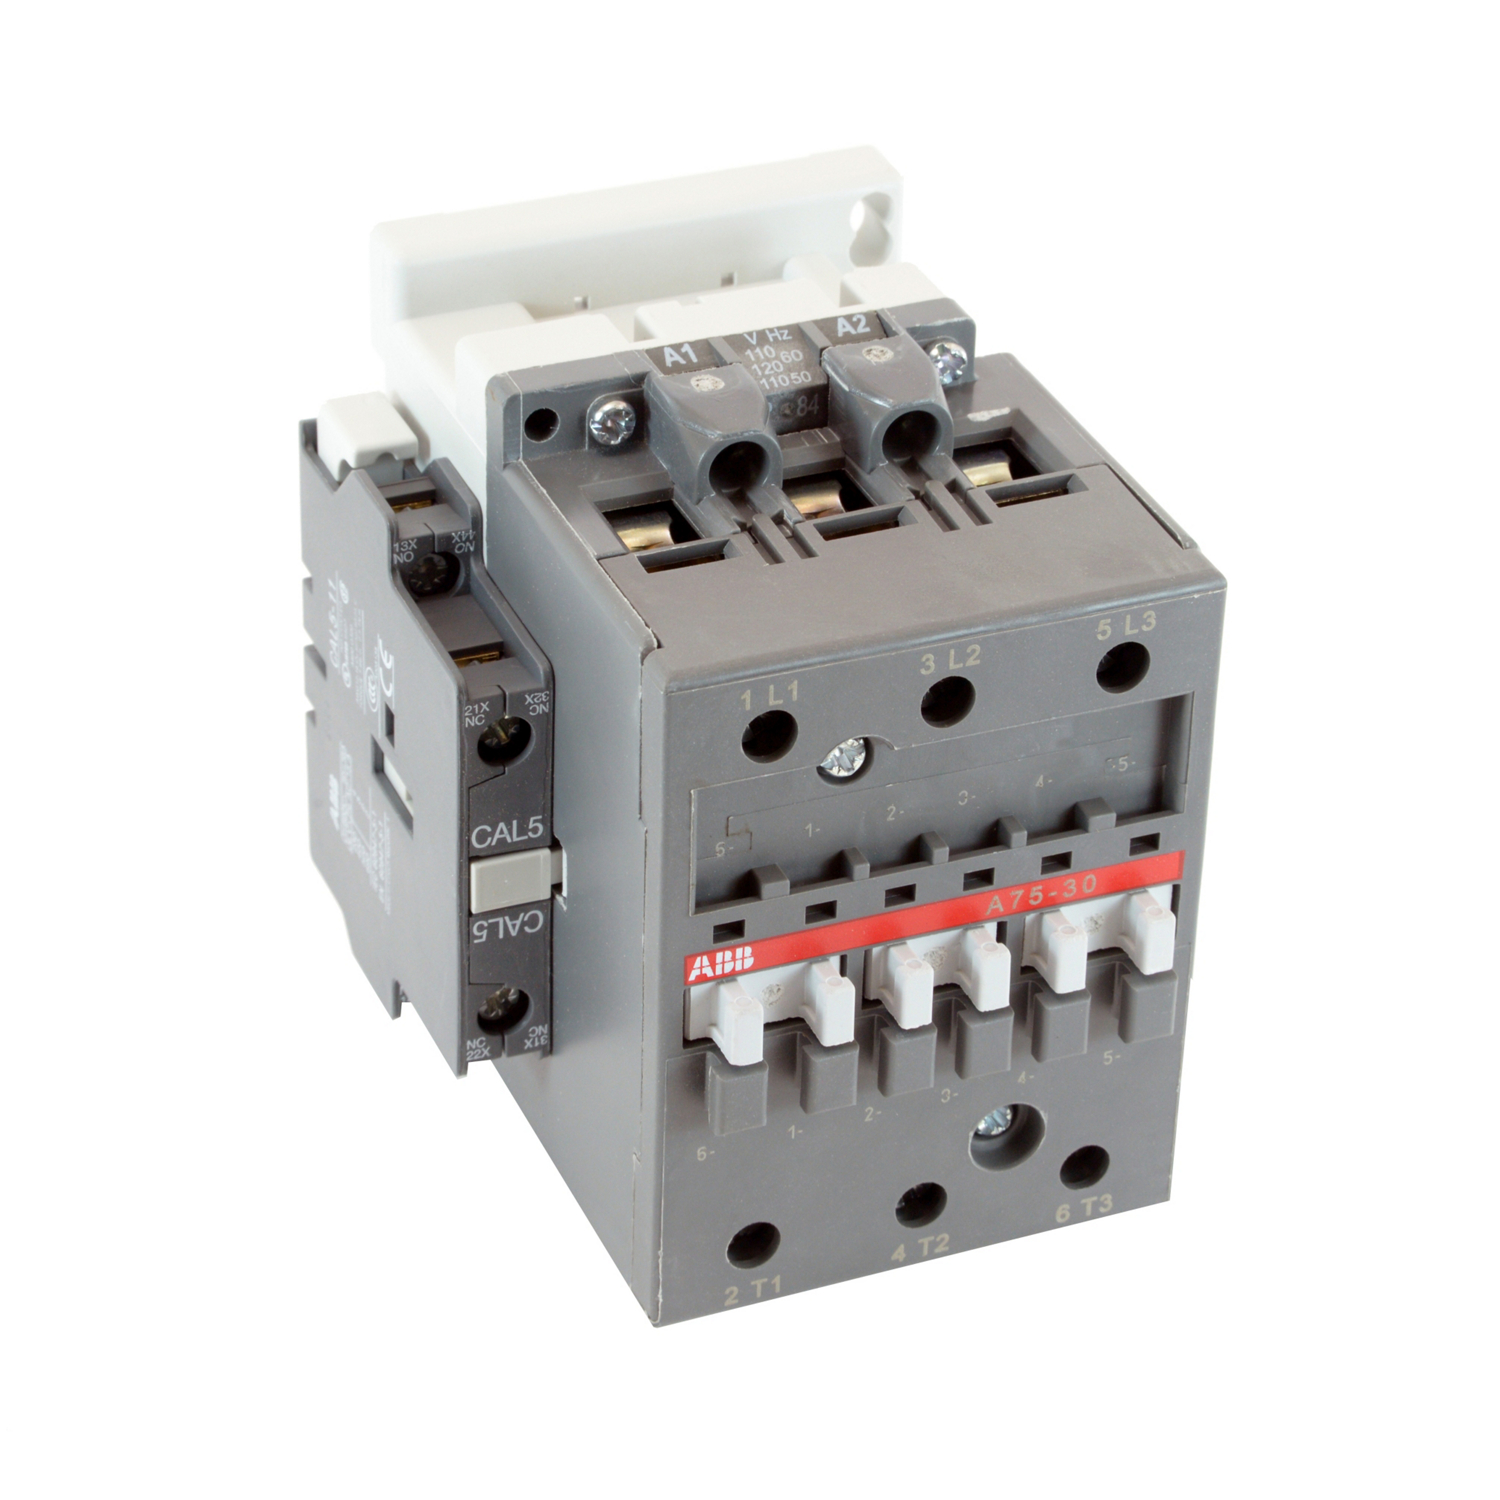 ABB A75-30-11-84 3 pole, 125 amp, non-reversing across the line contactor with 110-120V AC coil and 1 NO and 1 NC auxiliary contacts